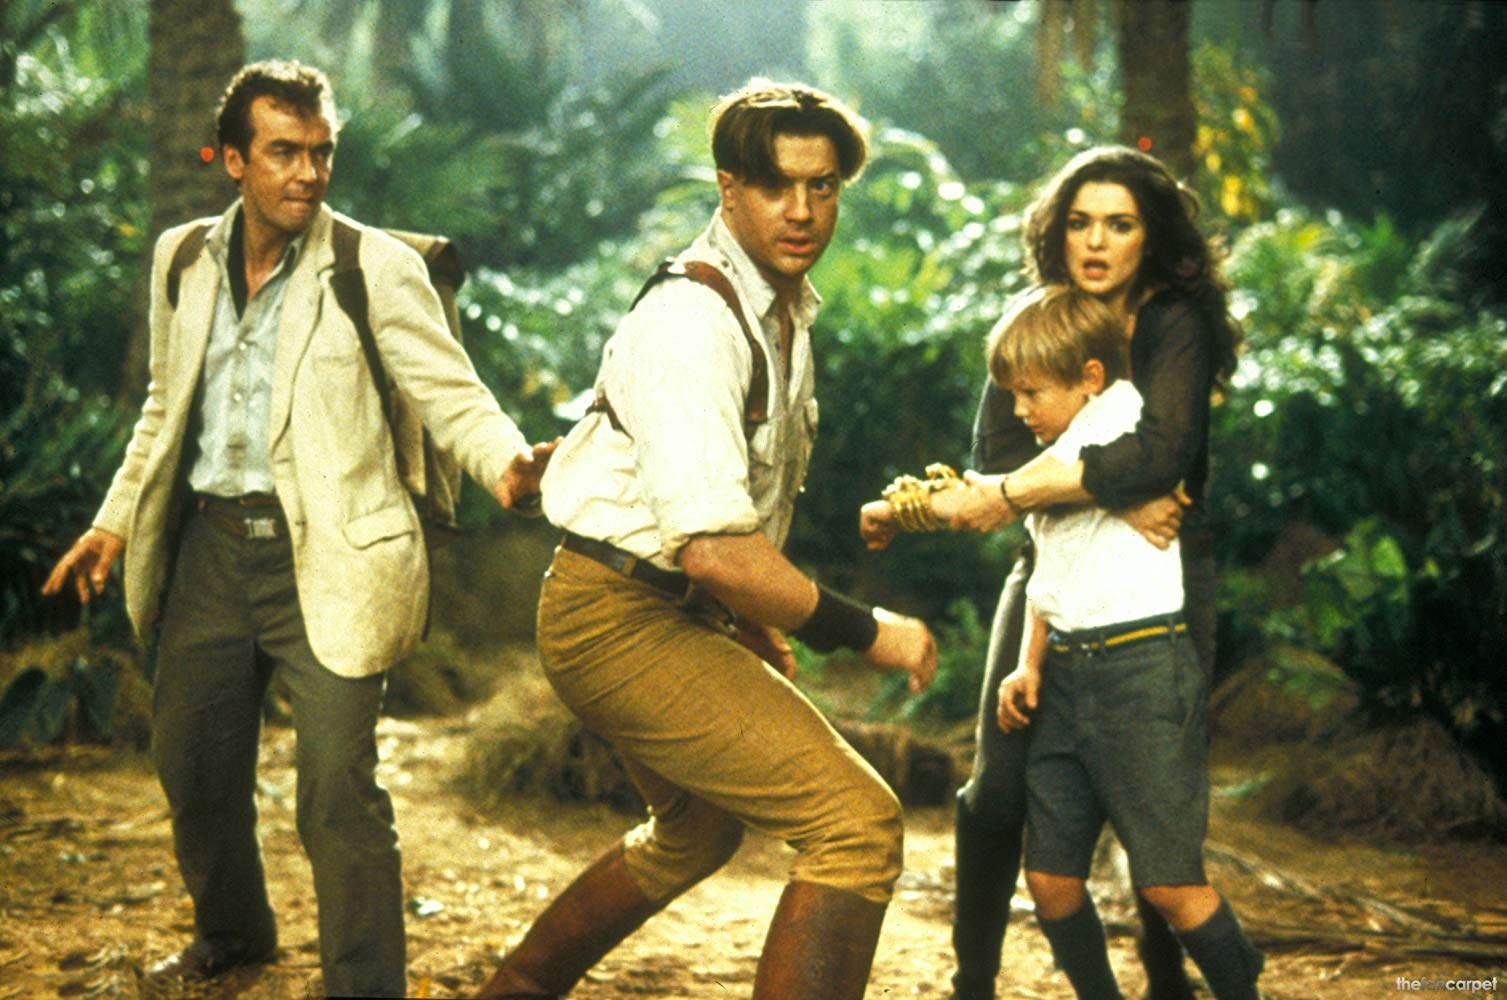 Back in action - Jonathan Carnahan (John Hannah), Rick Carter (Brendan Fraser), Evelyn (Rachel Weisz) who is now his wife and their son Alex (Freddie Boath) in The Mummy Returns (2001)